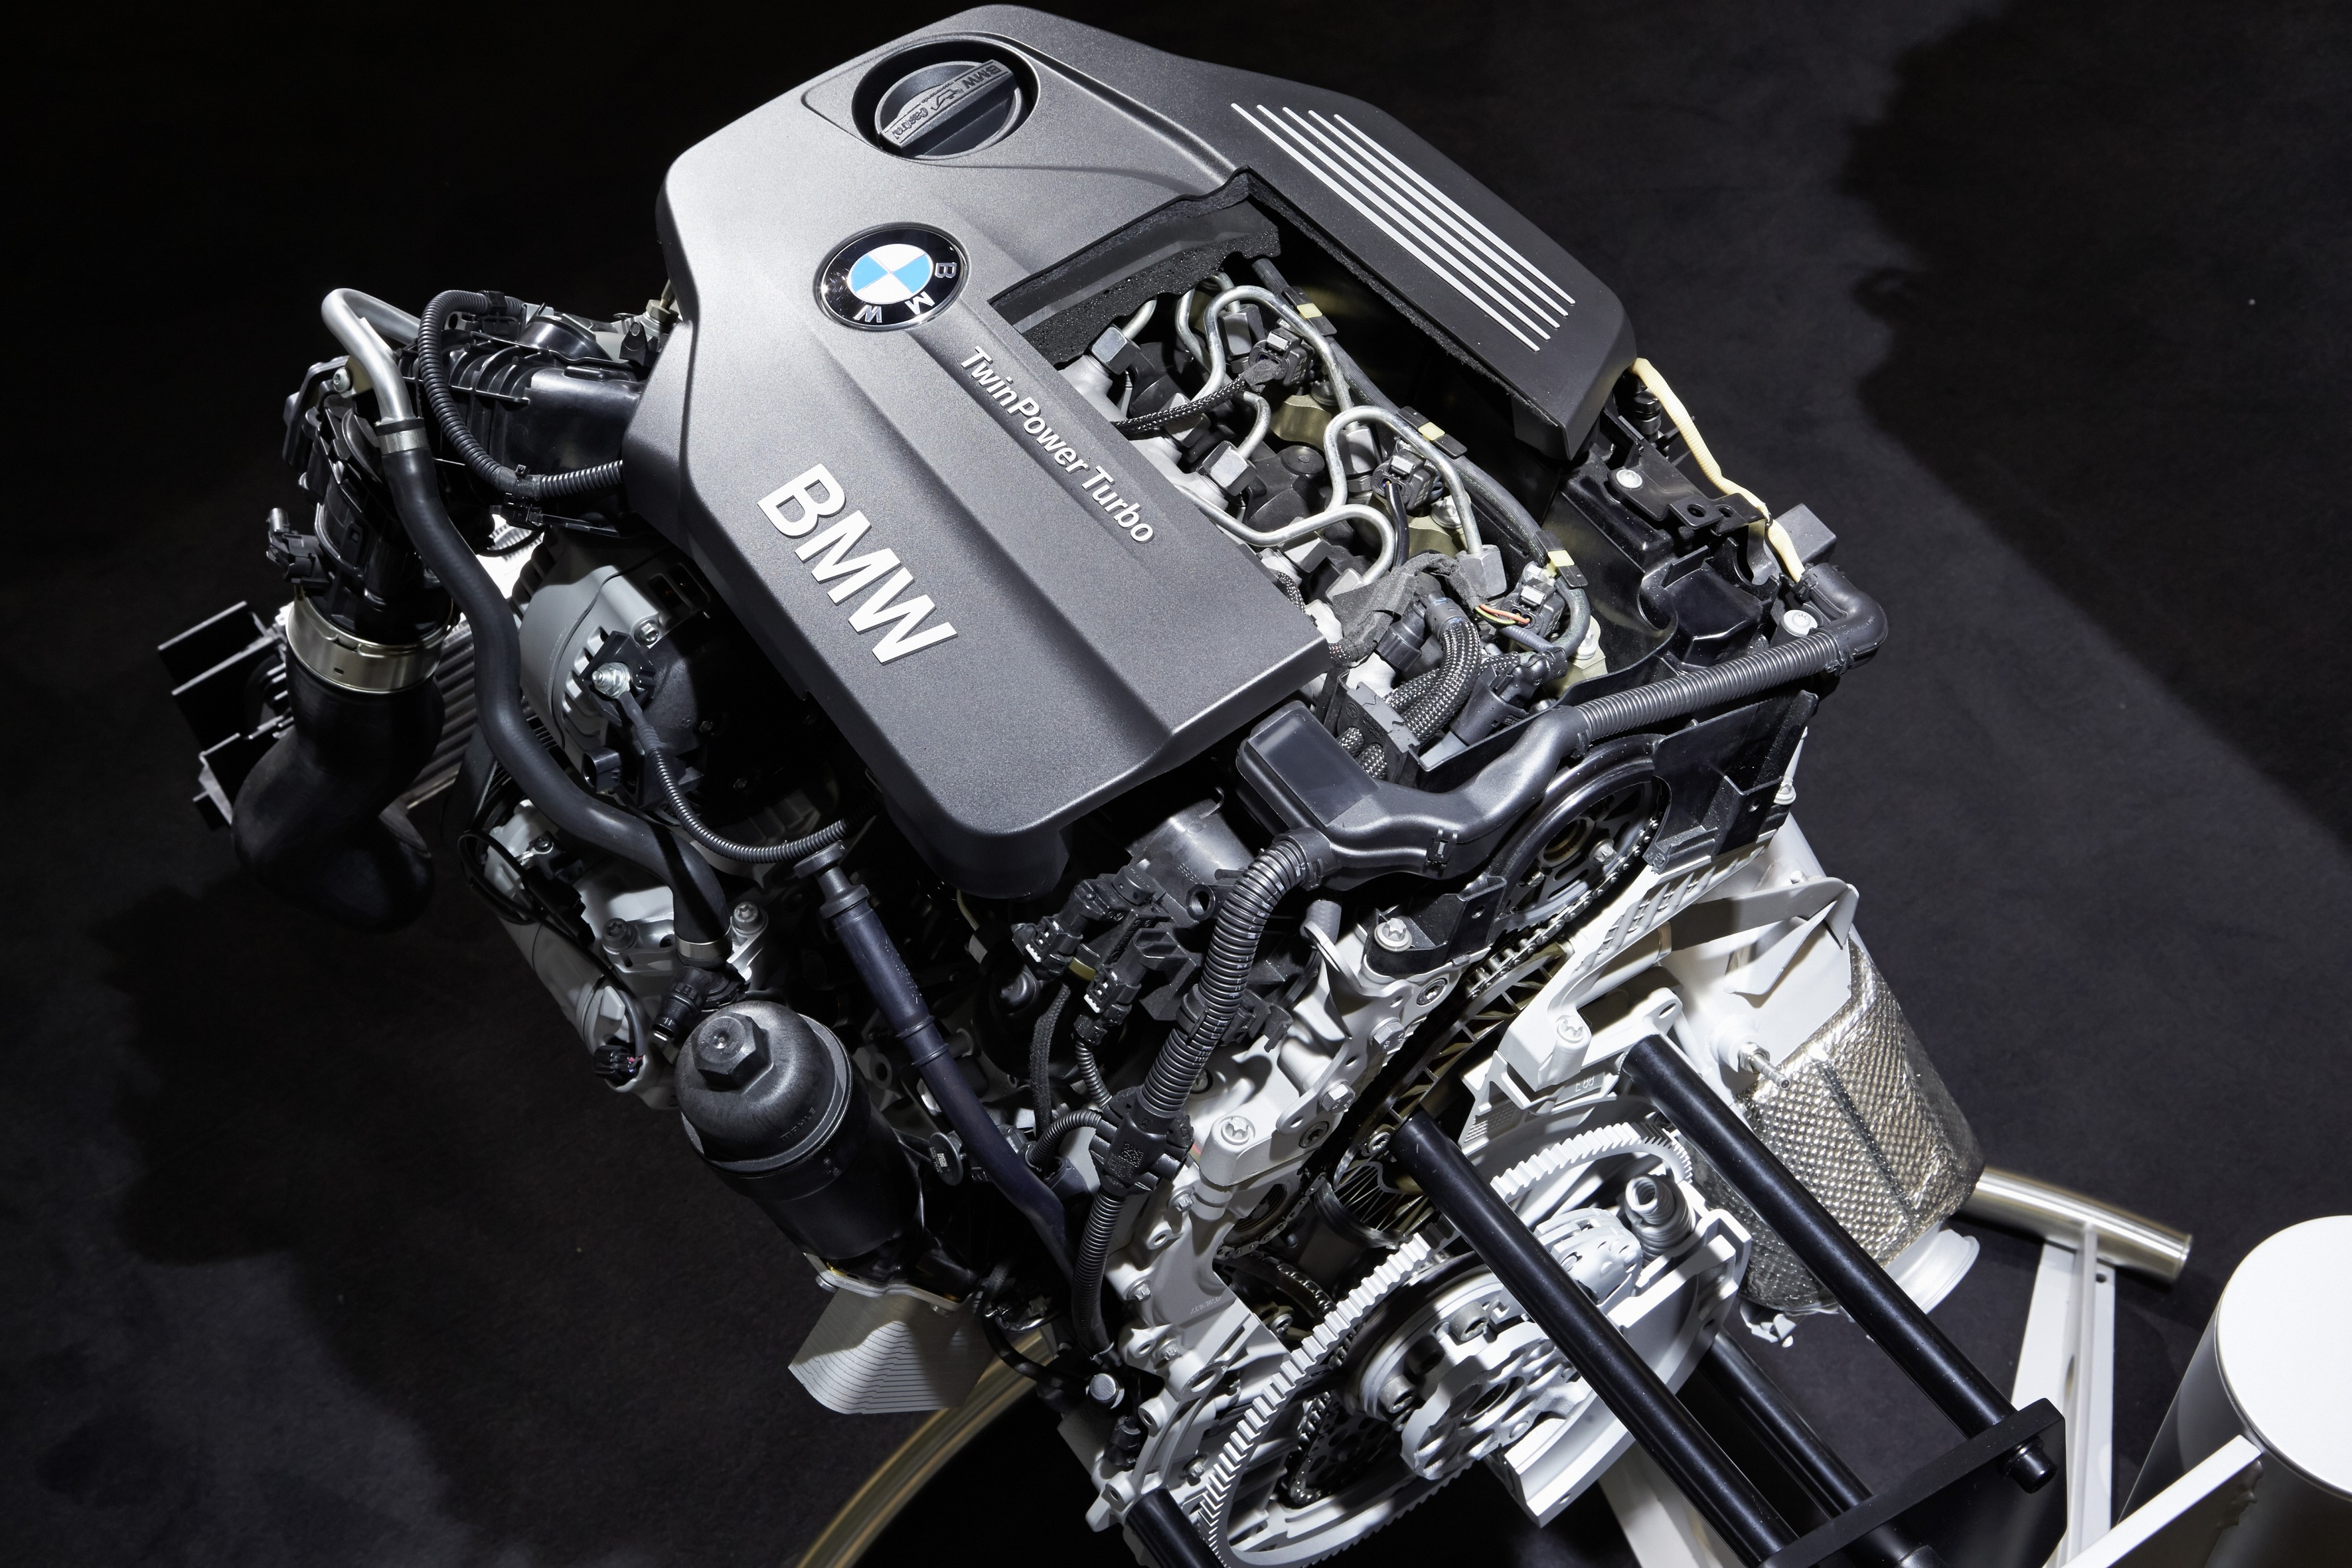 Bmw 2 Series 3 Series 4 Series Get New Engines 5 Series M3 M4 And I8 To Receive Additional